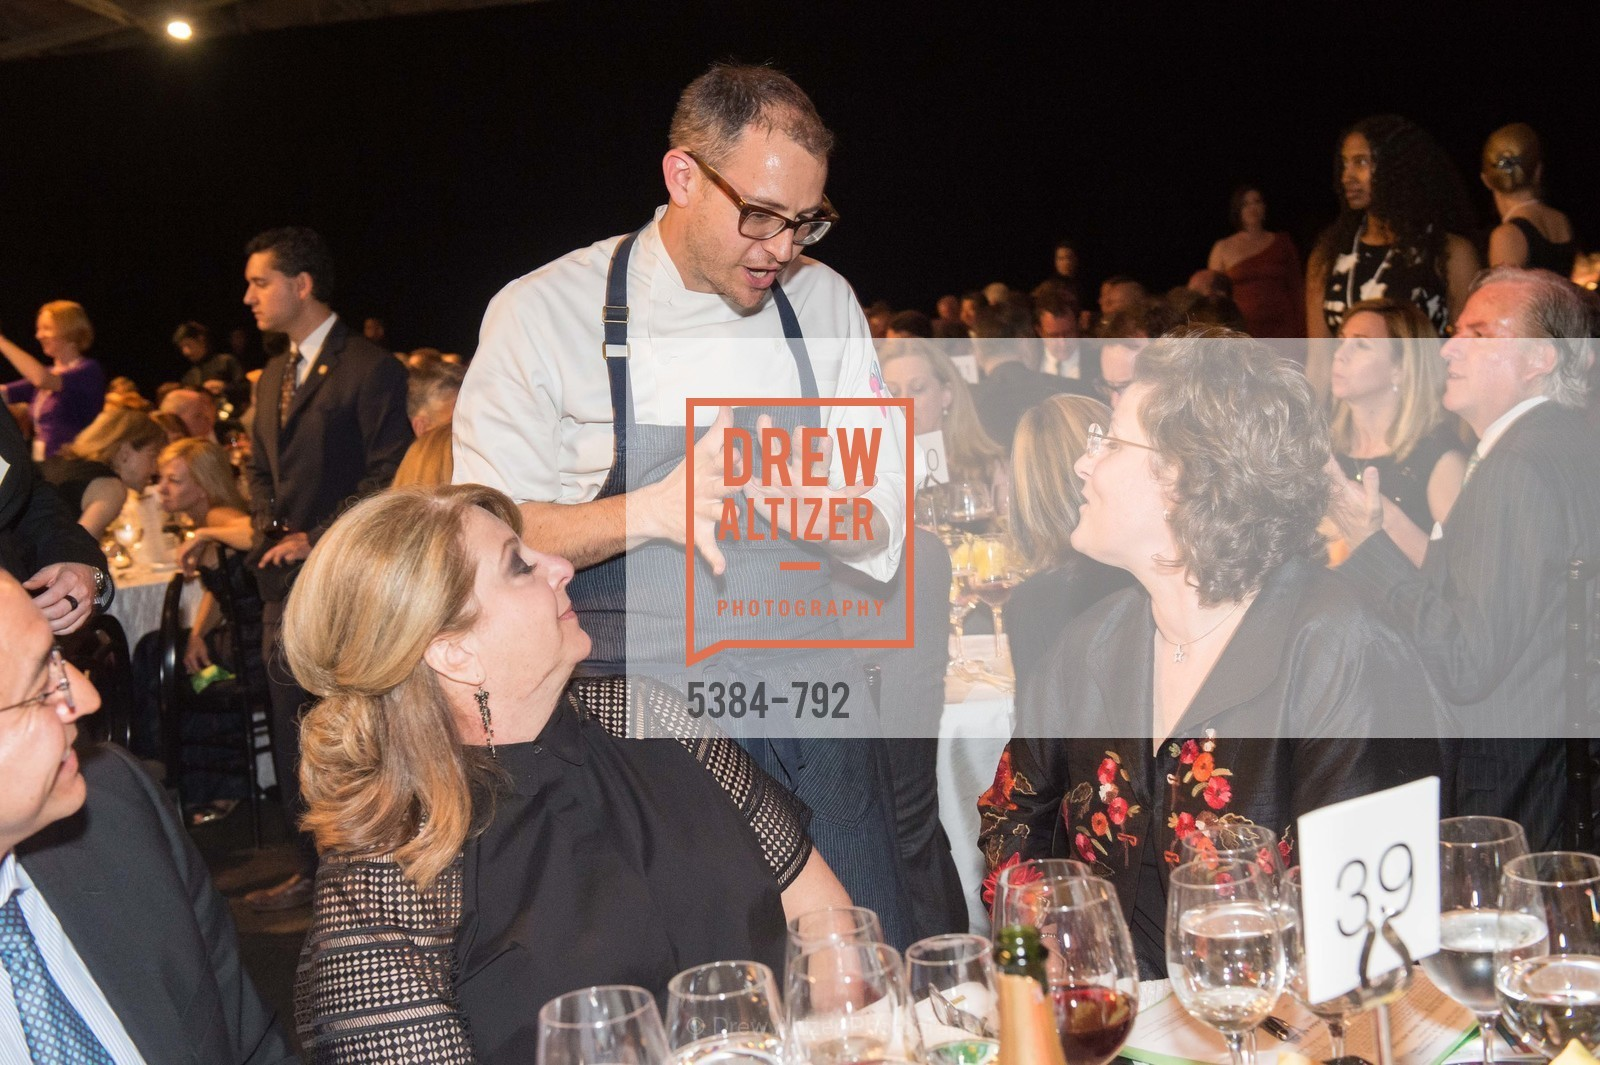 Diane Pellicione, Susan Sangiocomo, MEALS ON WHEELS OF SAN FRANCISCO'S 28th Annual Star Chefs and Vintners Gala, US, April 19th, 2015,Drew Altizer, Drew Altizer Photography, full-service agency, private events, San Francisco photographer, photographer california